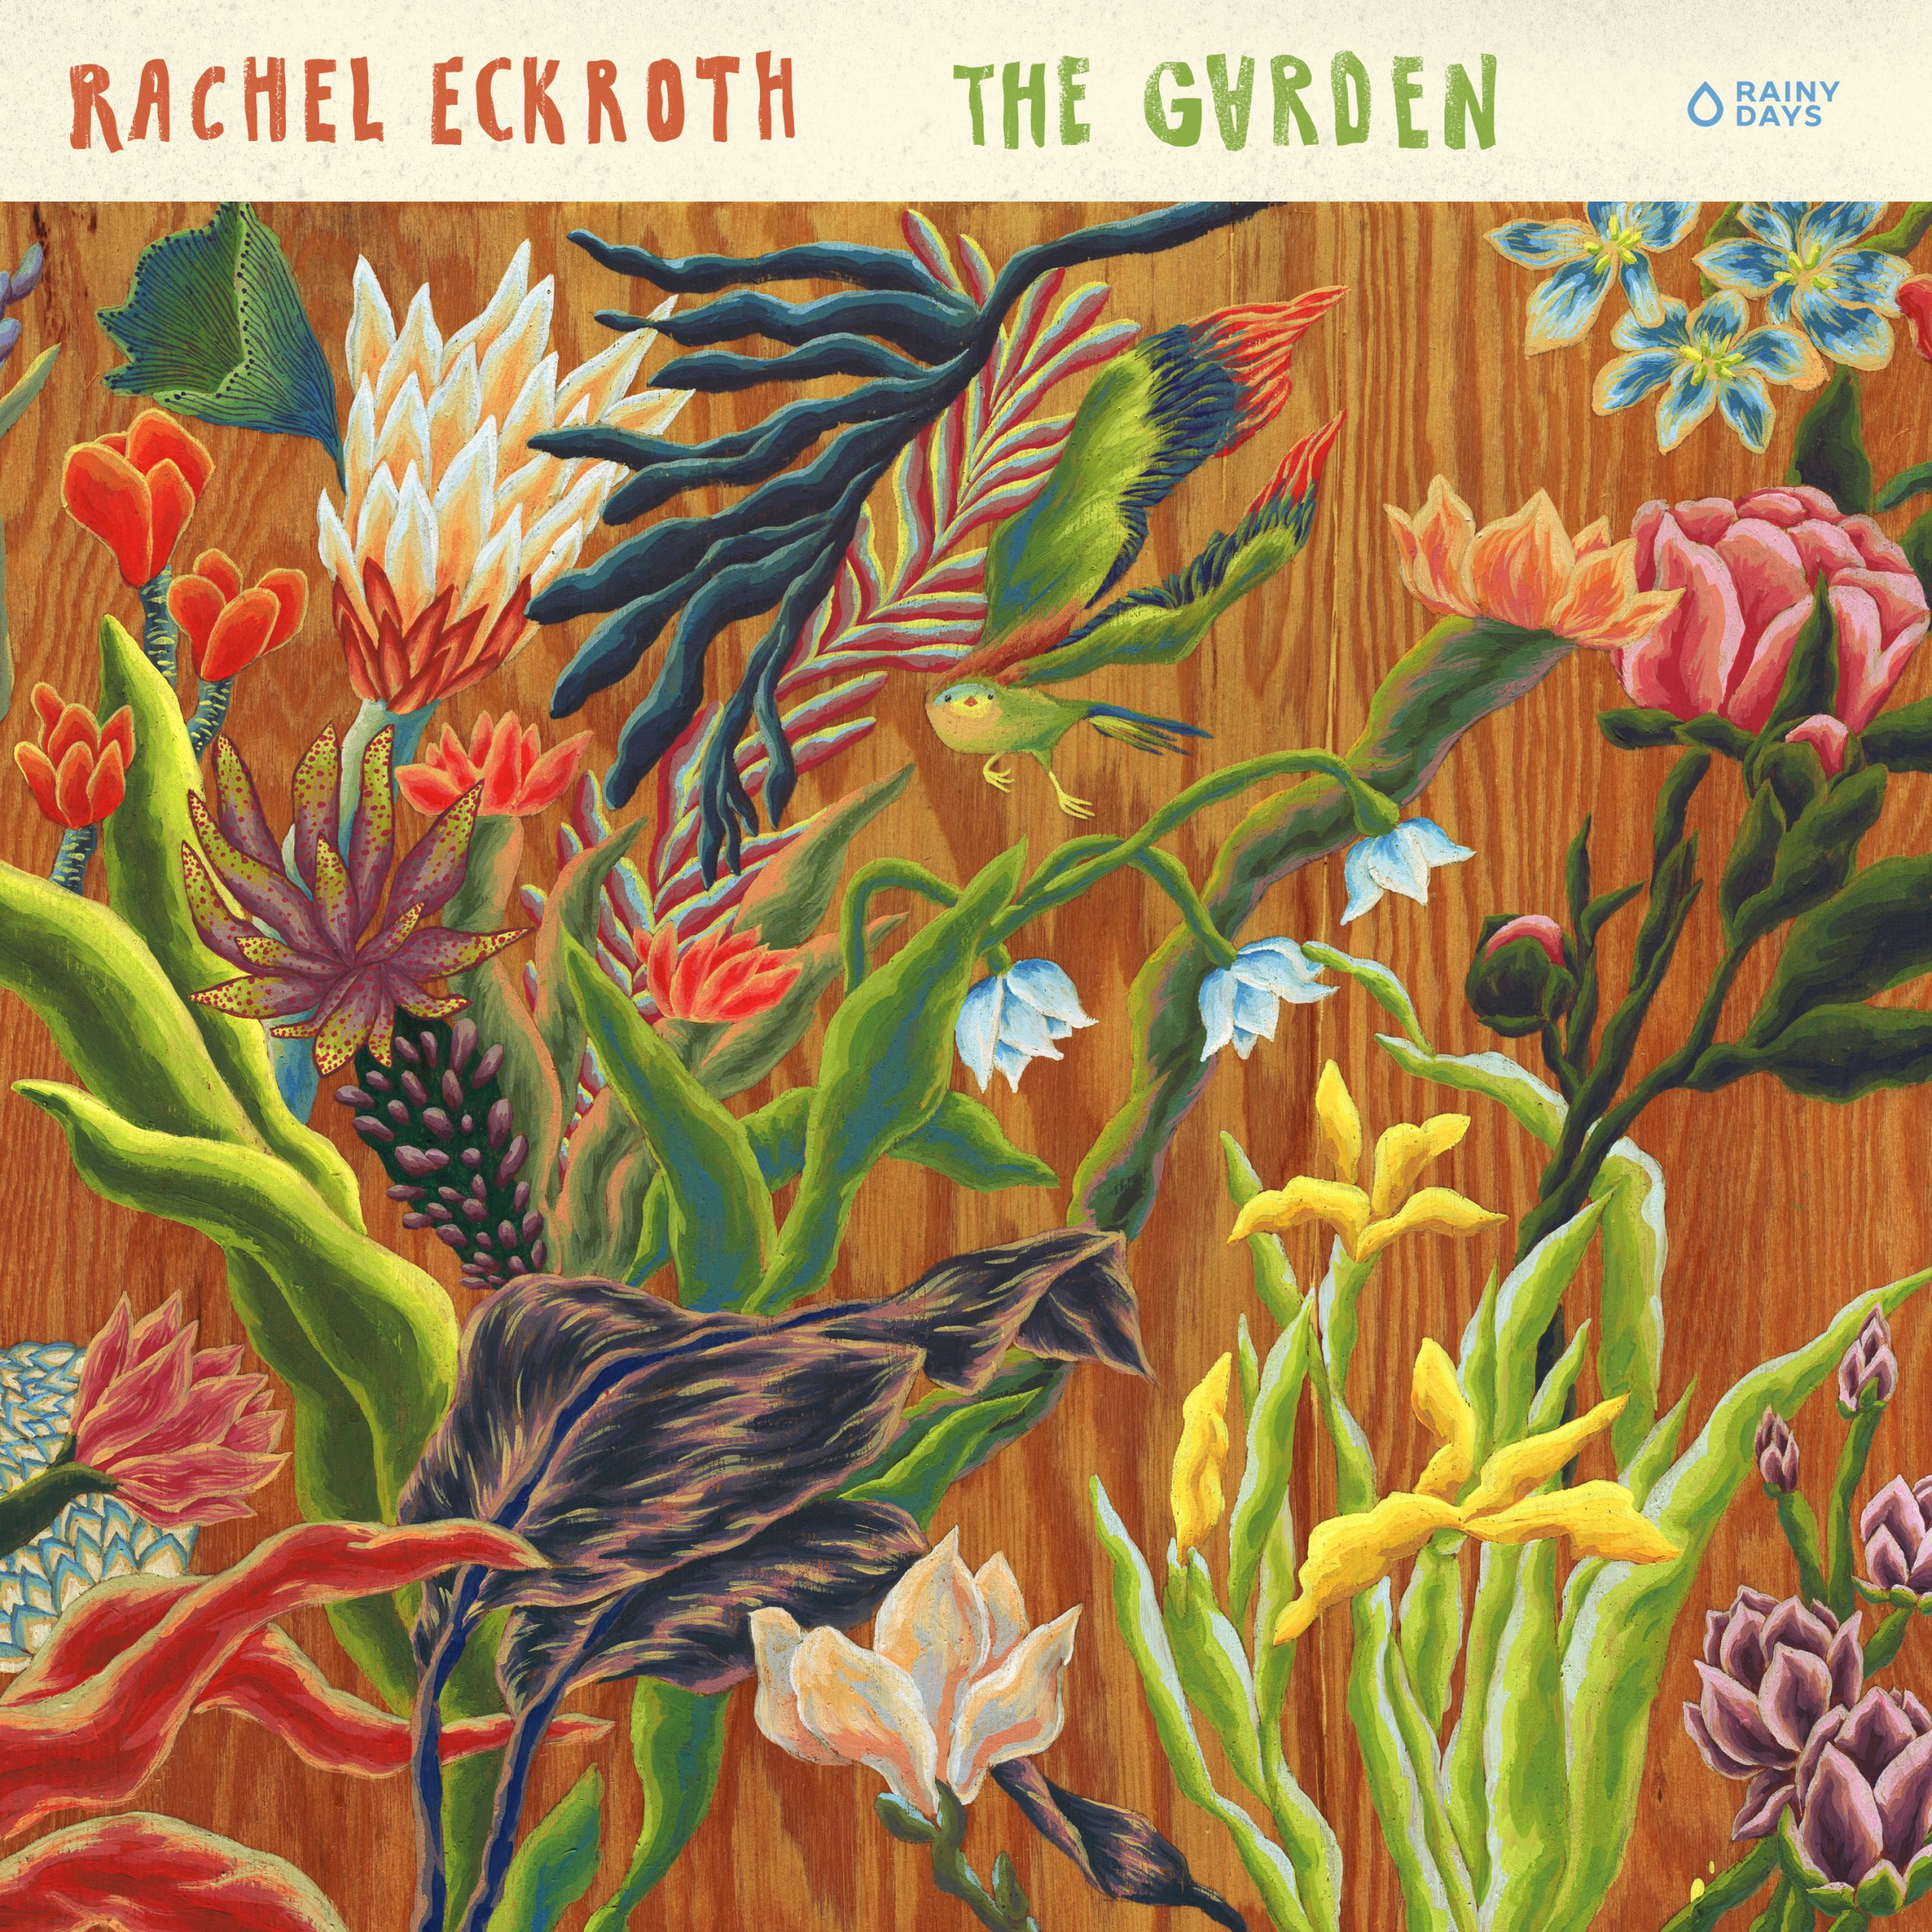 REVIEW: Rachel Eckroth's 'The Garden' – Throw the Dice and Play Nice